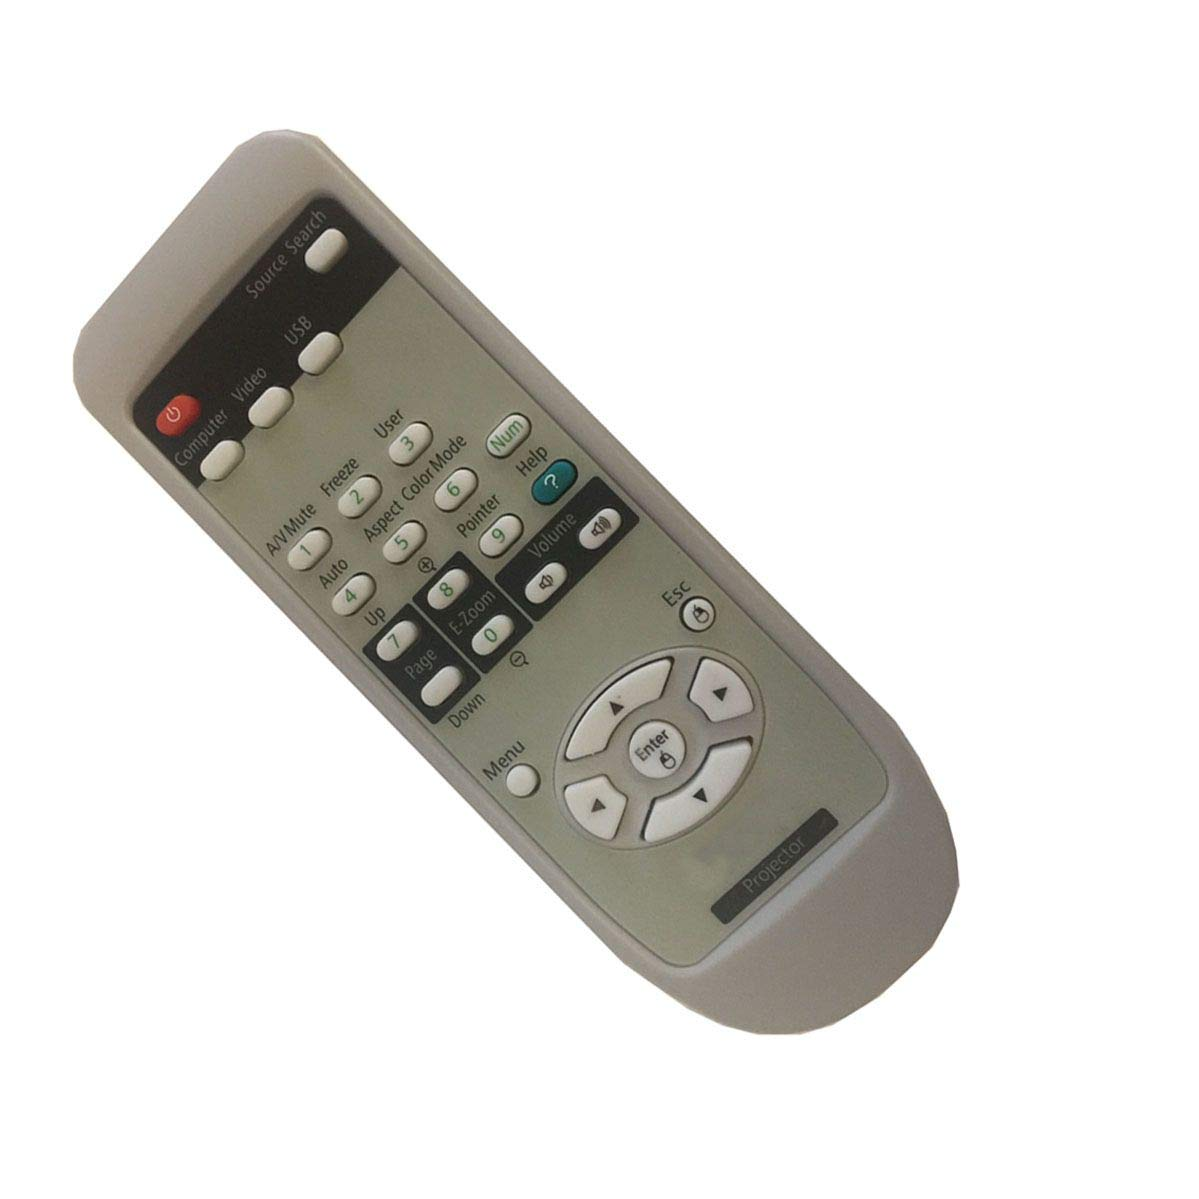 Easy Replacement Remote Conrtrol Suitable for Epson EB-G5900 EB-G5800 Projector by EREMOTE